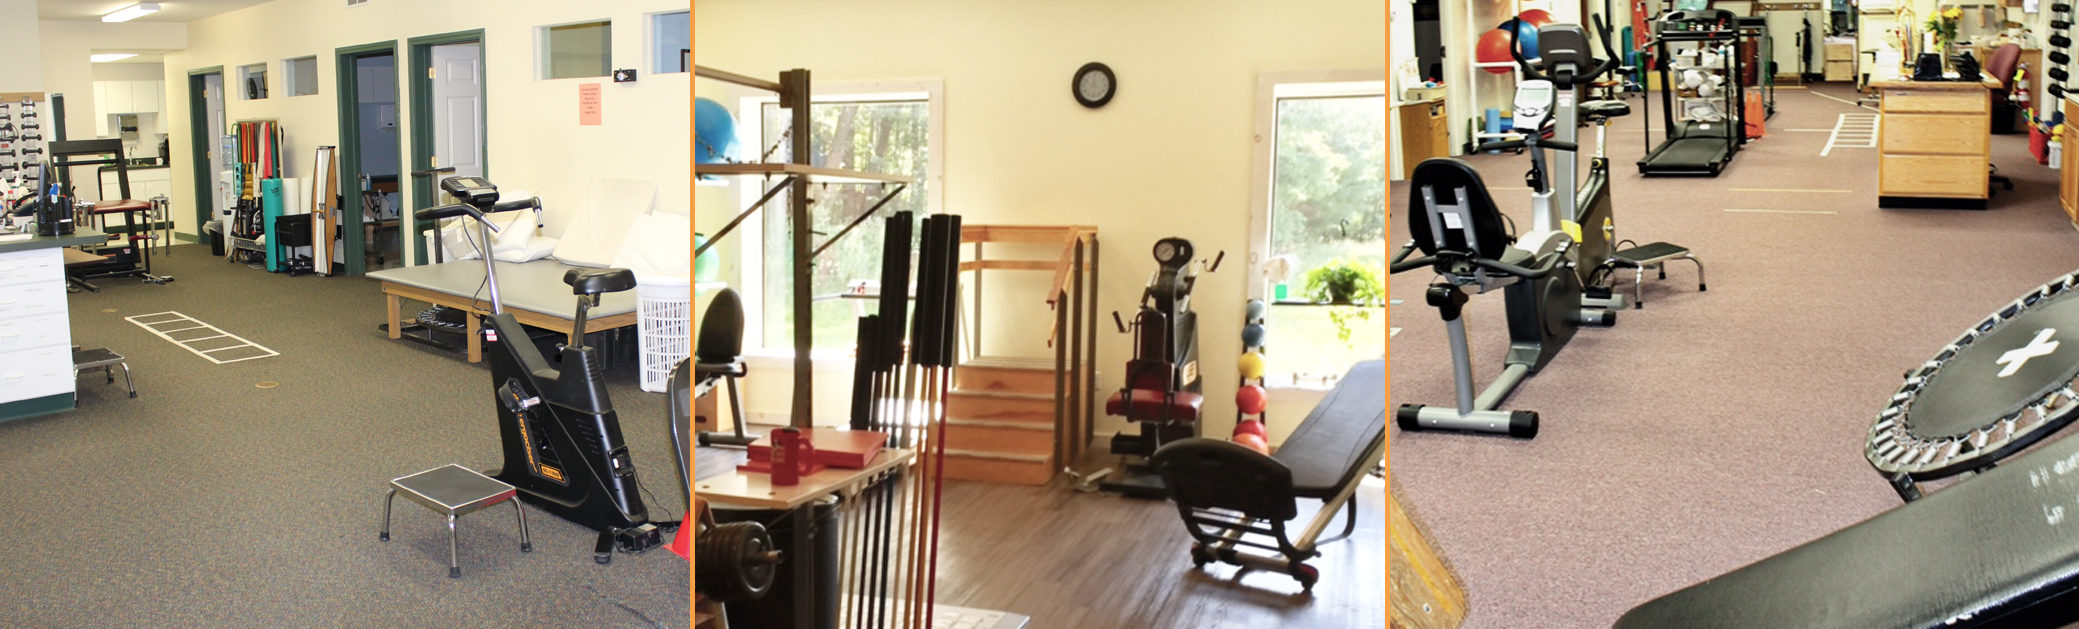 ECRC Physical Therapy Office